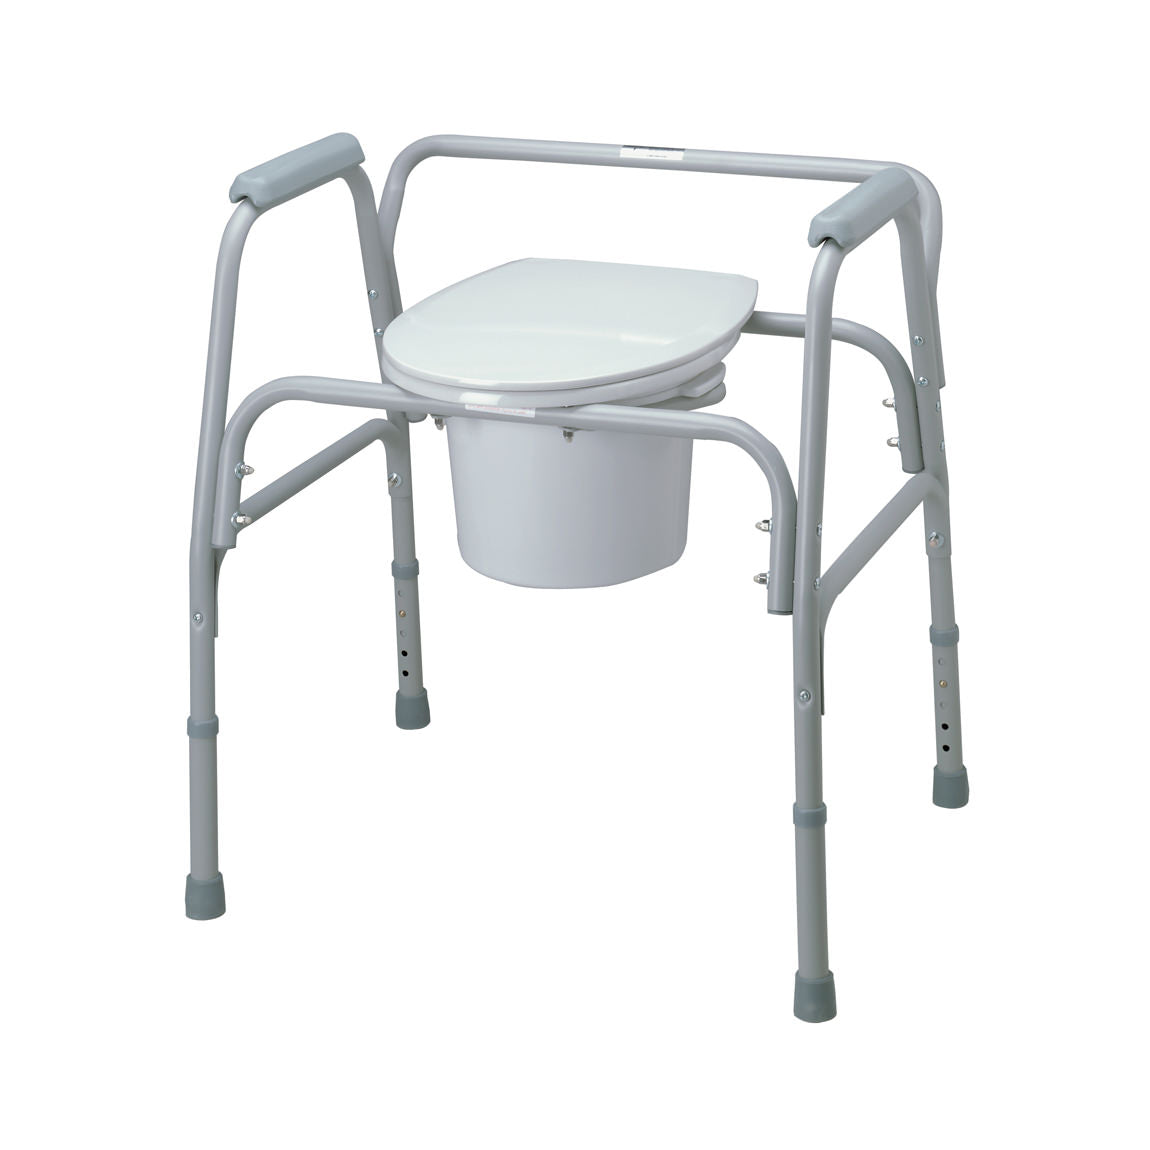 Medline Steel Bariatric Commode